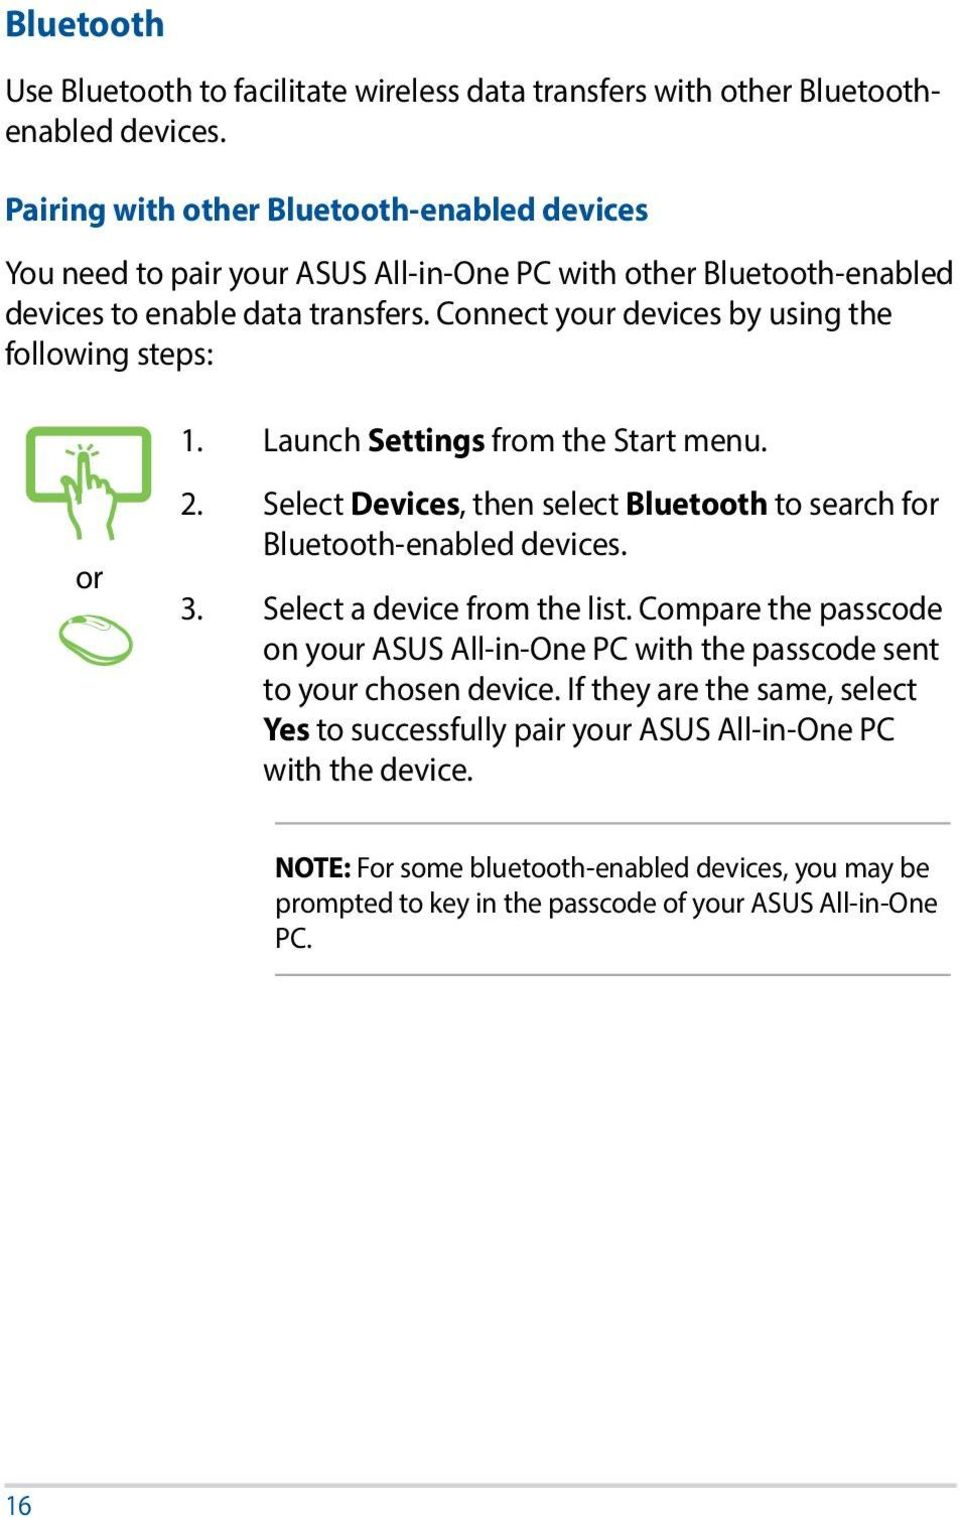 Connect your devices by using the following steps: 1. Launch Settings from the Start menu. or 2. Select Devices, then select Bluetooth to search for Bluetooth-enabled devices. 3.